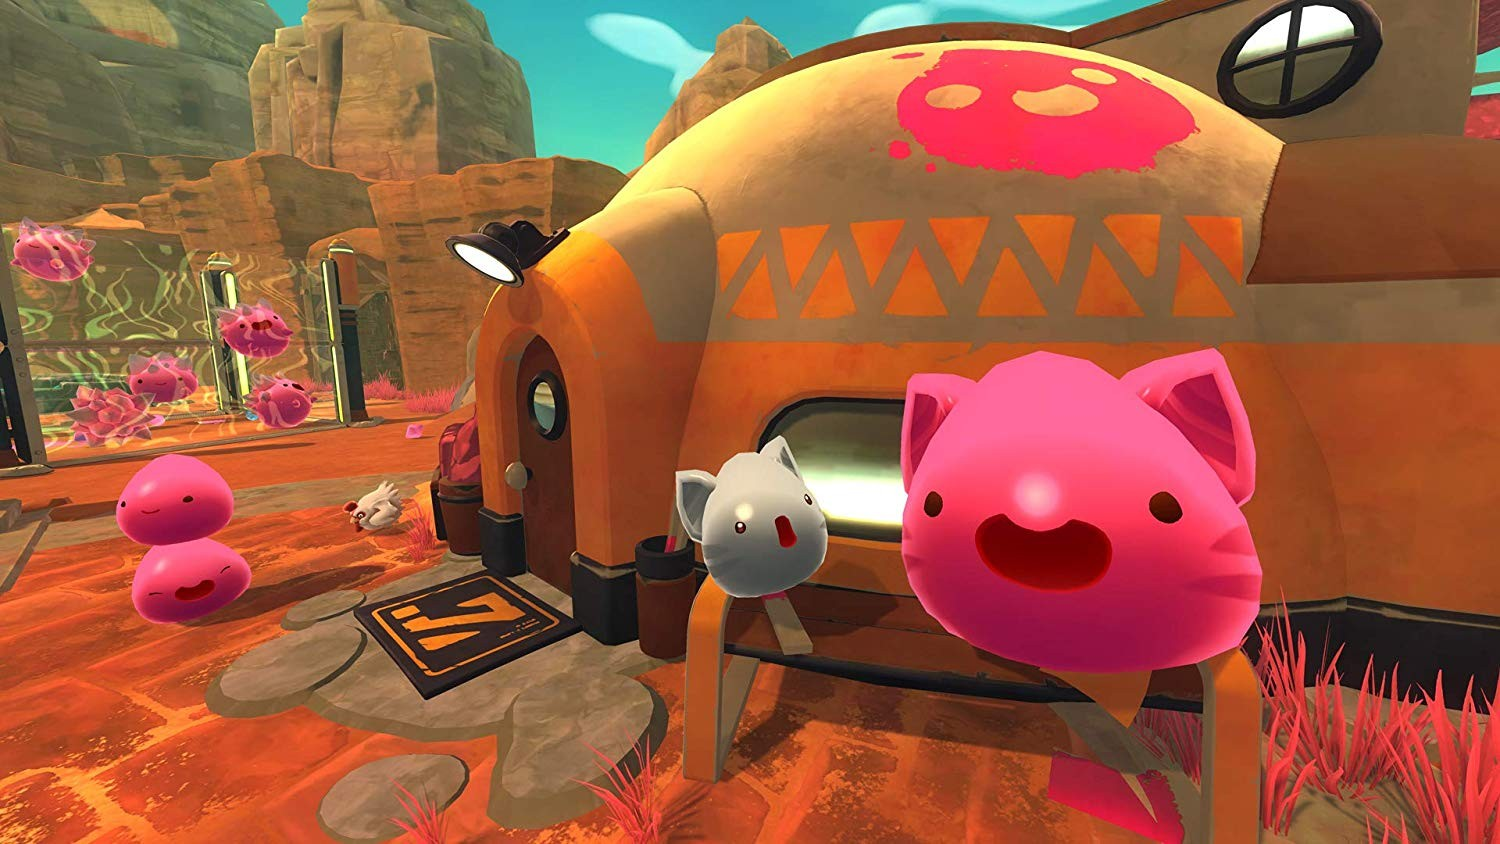 Slime Rancher, Slime Rancher [Deluxe Edition], PS4, PlayStation 4, XONE, Xbox One, Skybound Games, Monomi Park, release date, features, price, pre-order now, trailer, Slime Rancher Deluxe Edition, Europe, North America, US